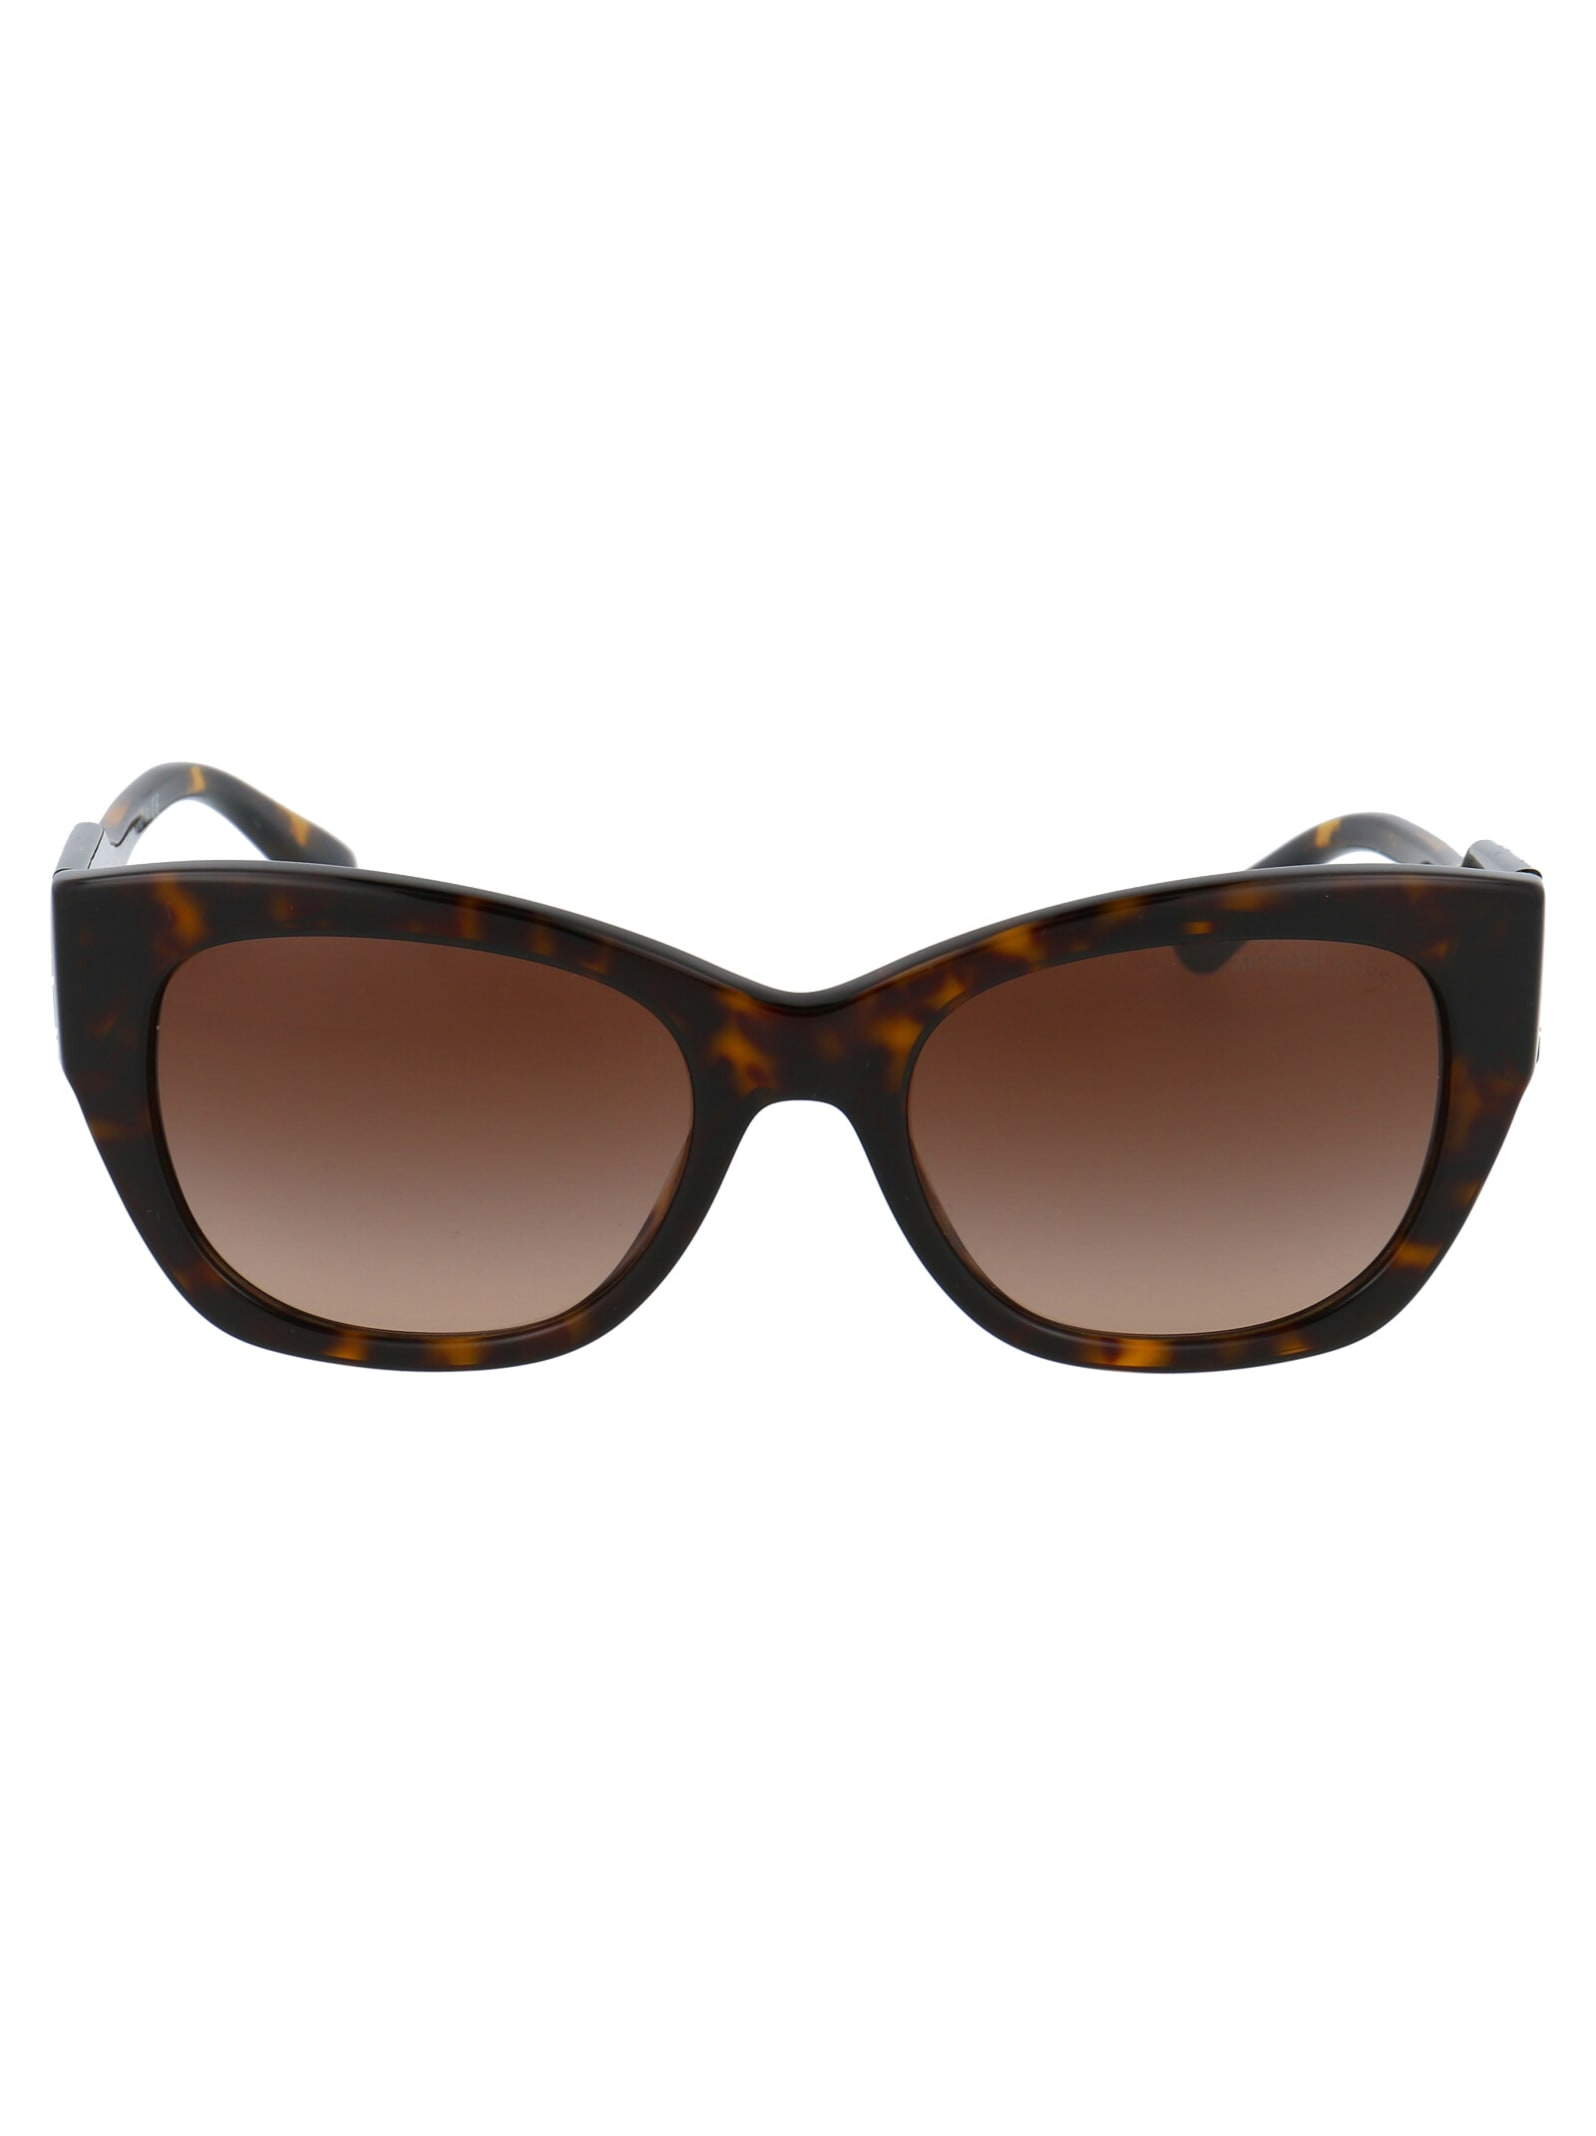 Palermo Sunglasses